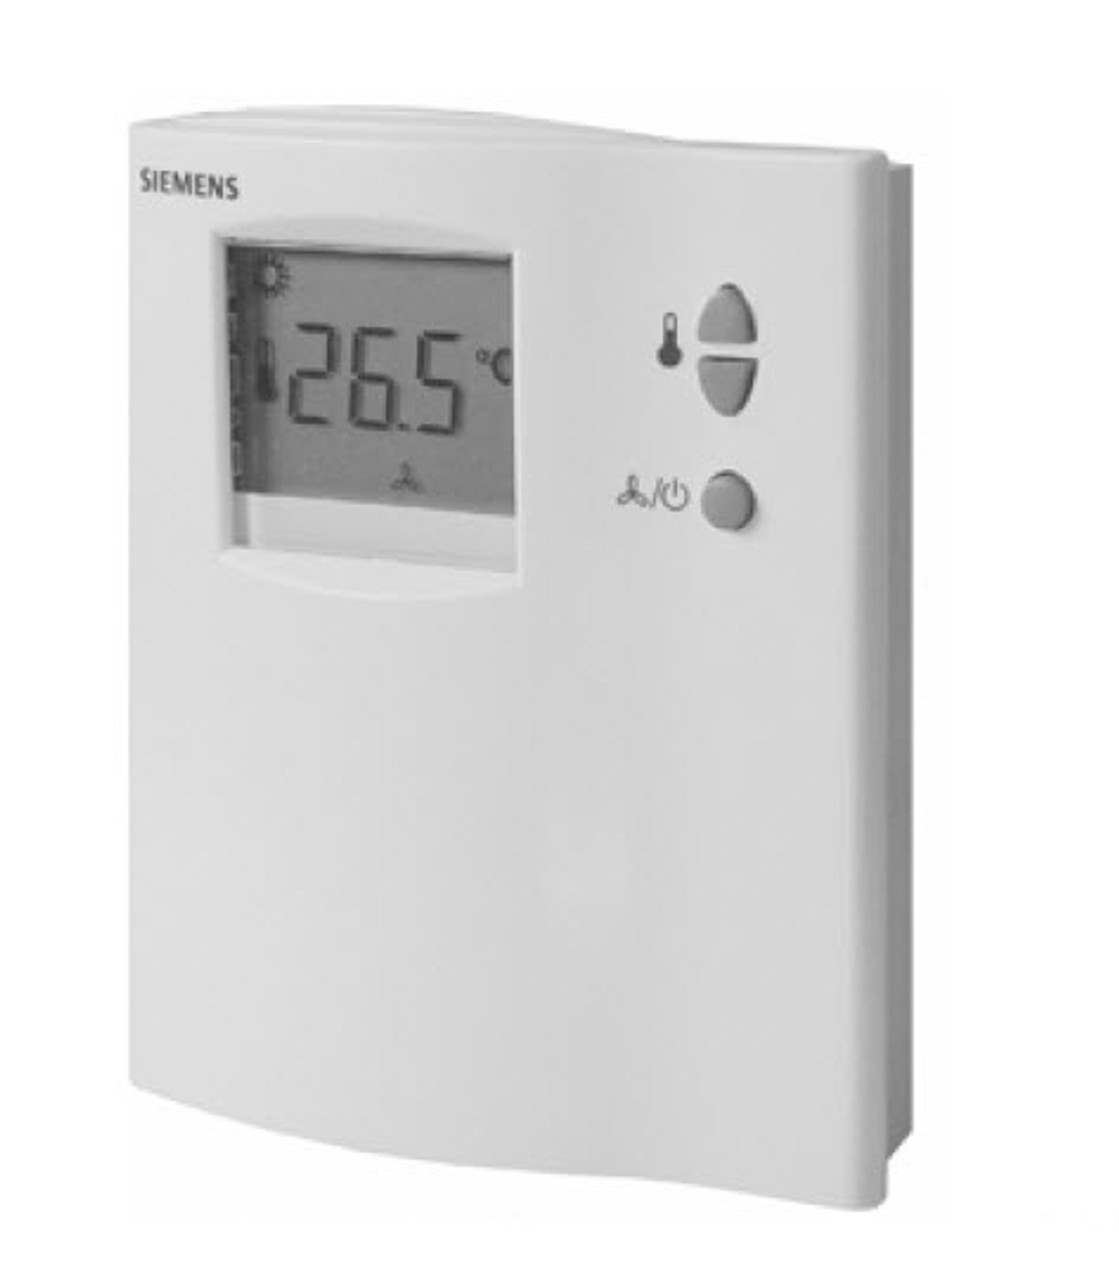 Siemens RDF110 Room thermostat for 2-pipe fan coils